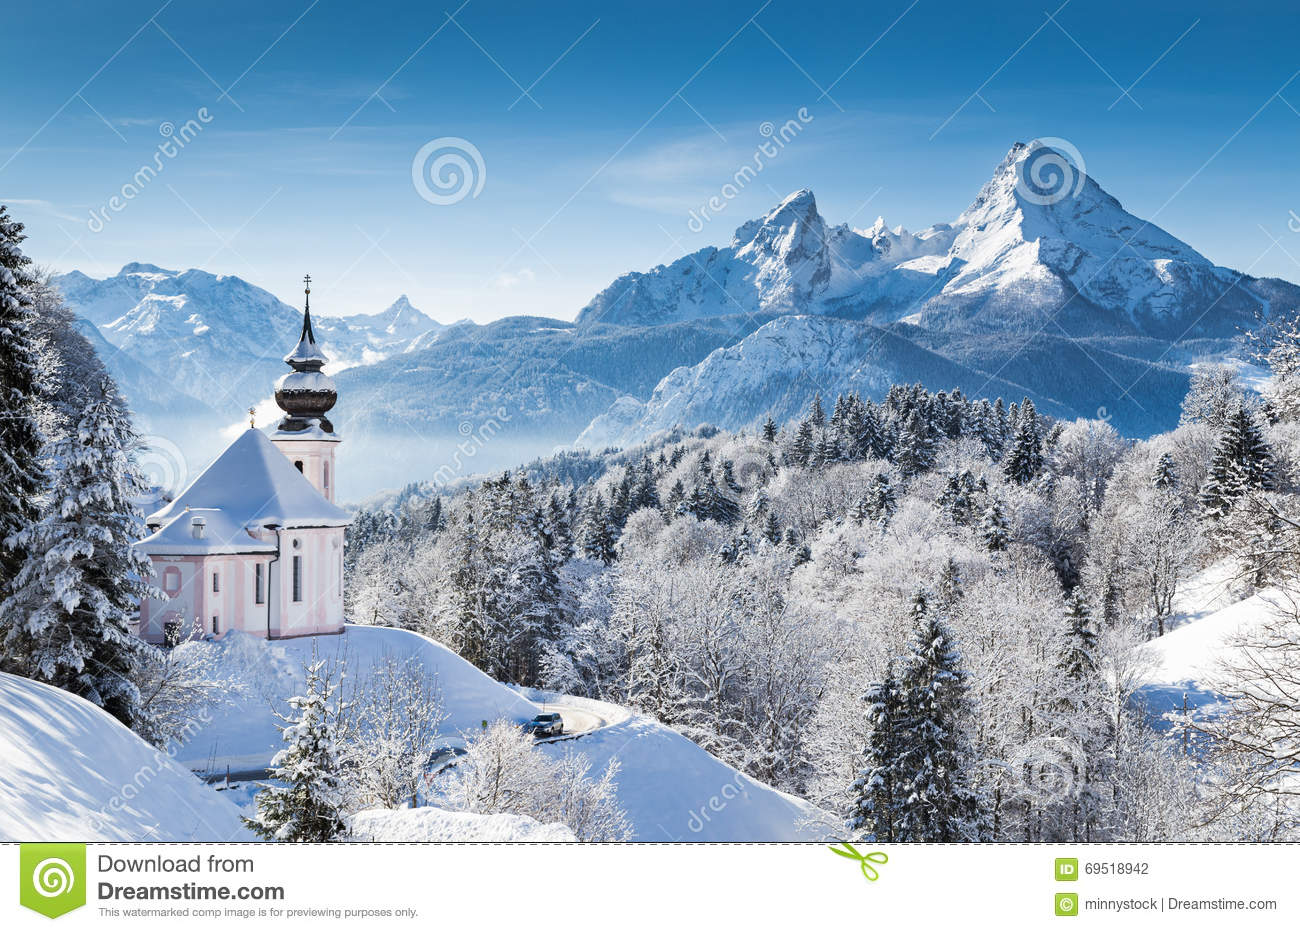 Winter wonderland in the Alps with church